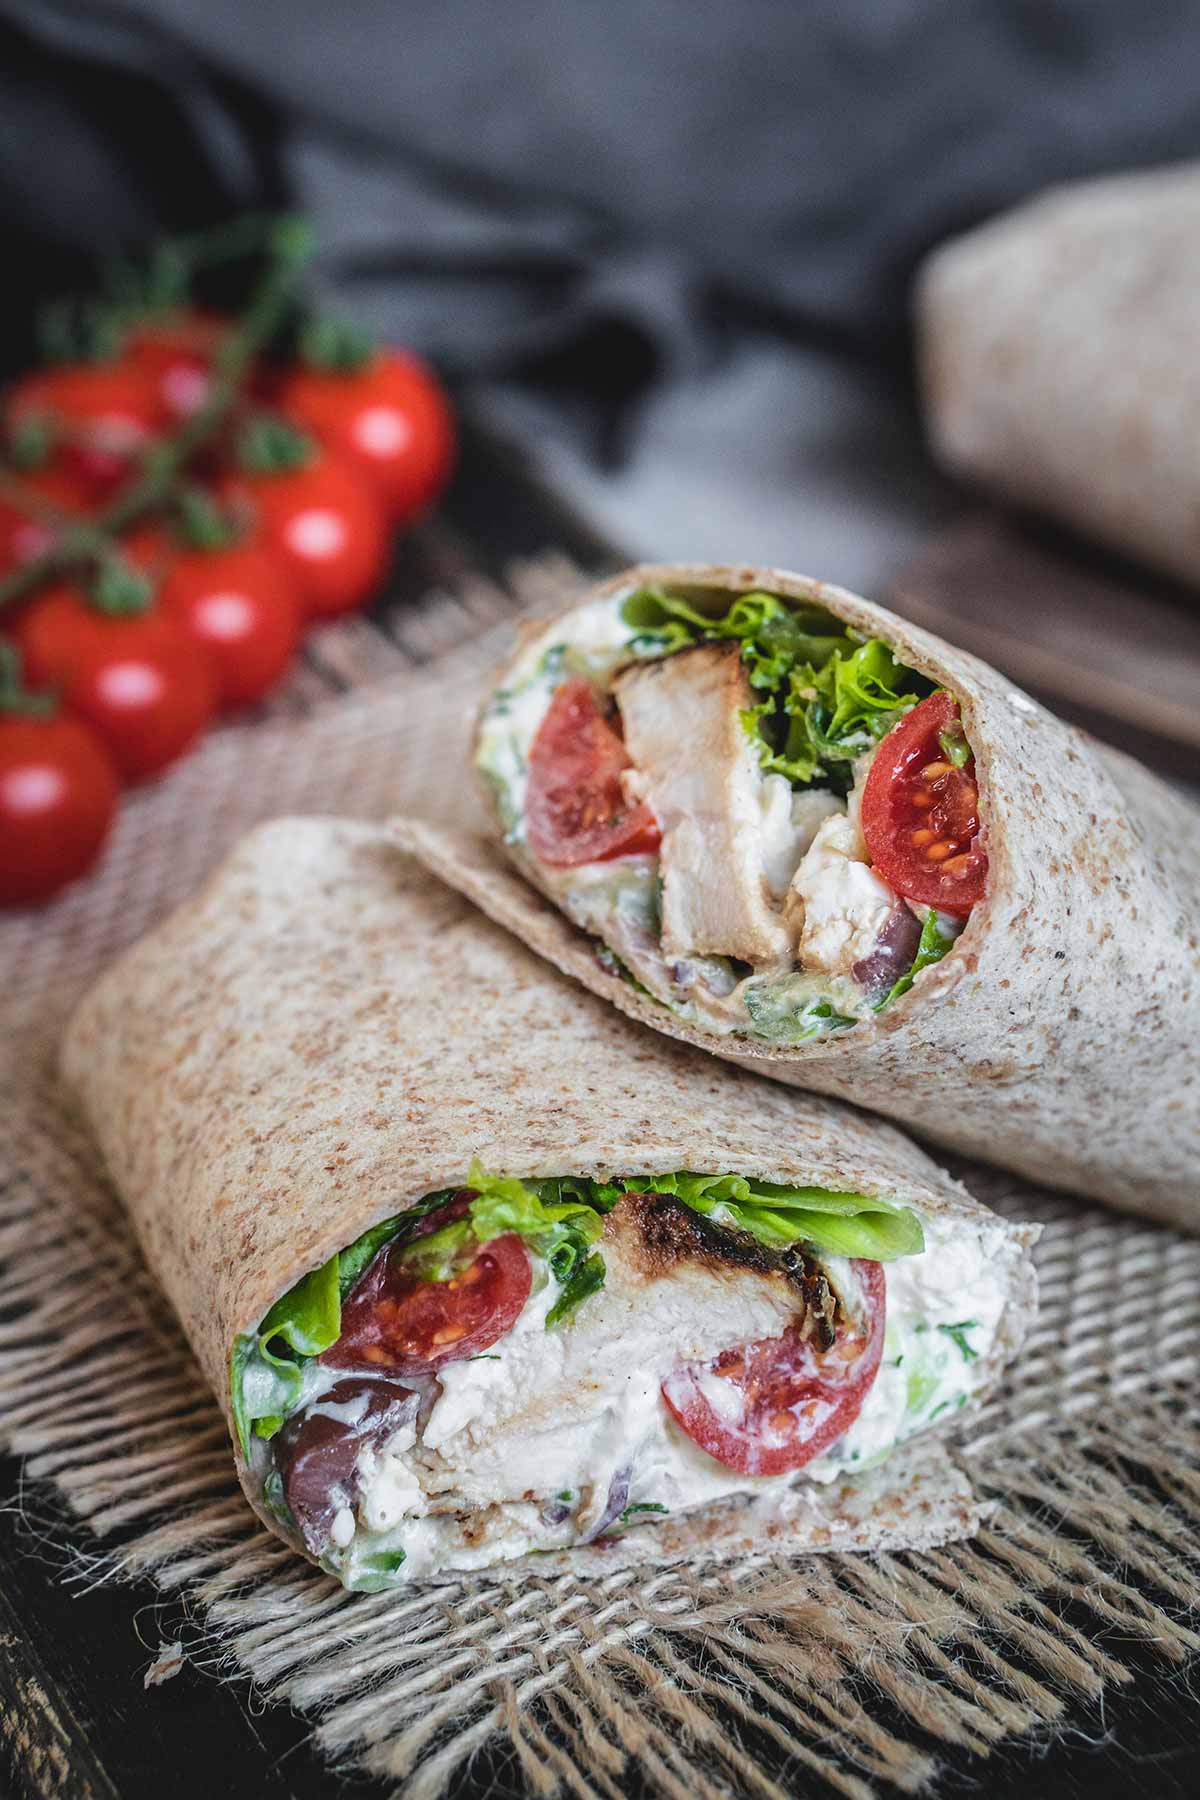 Greek style wraps made with chicken and tzatziki sauce